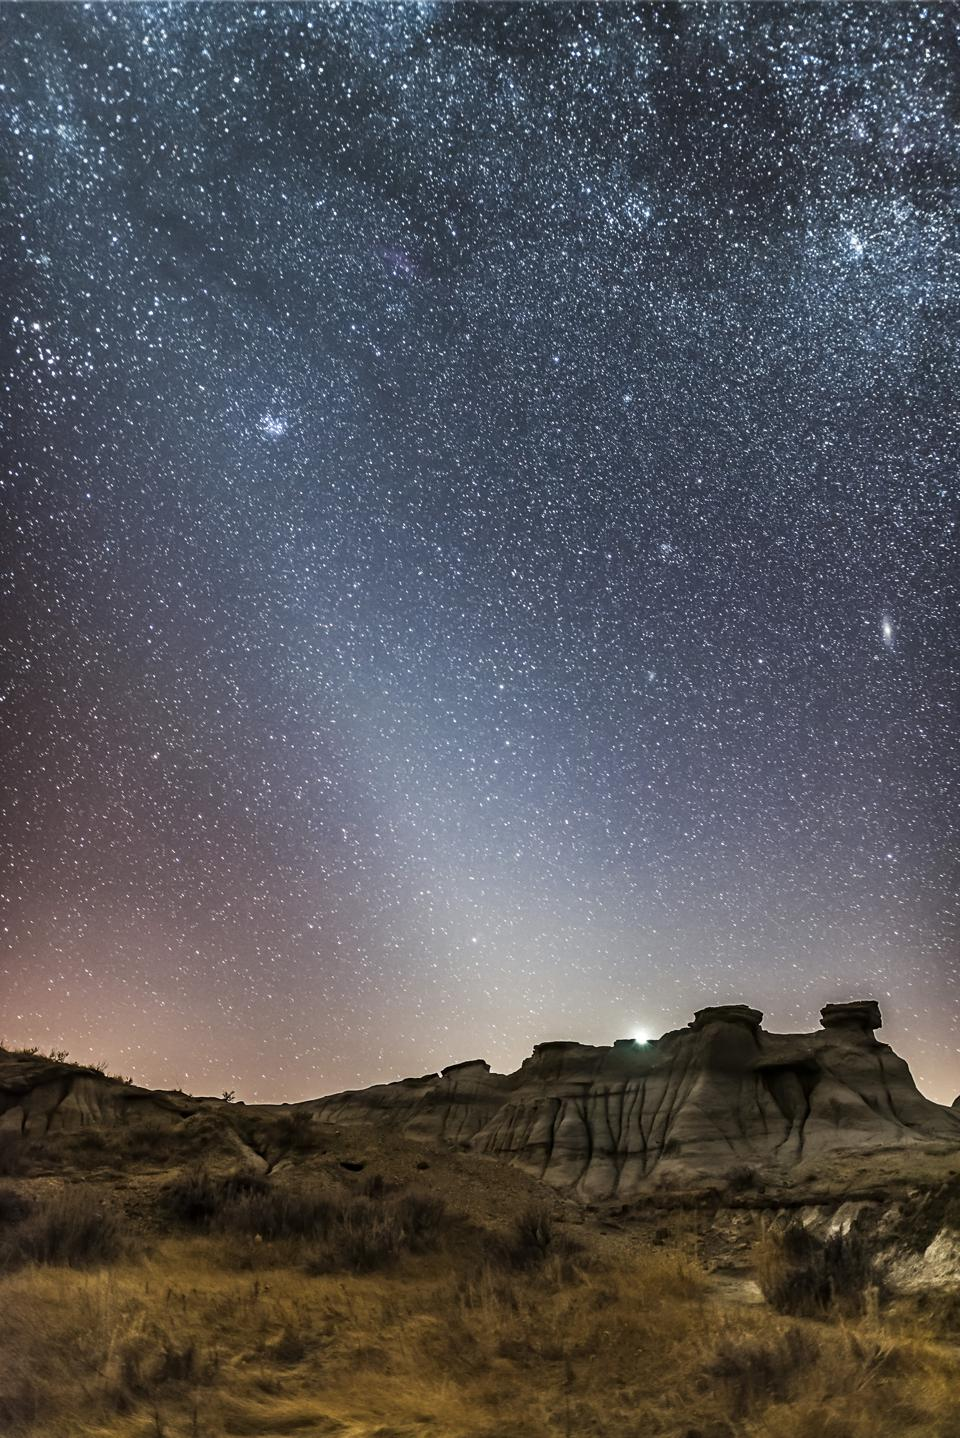 Sights like Zodiacal Light (the cone-shaped light) and the Andromeda Galaxy (center, right) are now impossible to see with the unaided eye from all but the darkest of places. (VW Pics/Universal Images Group via Getty Images)